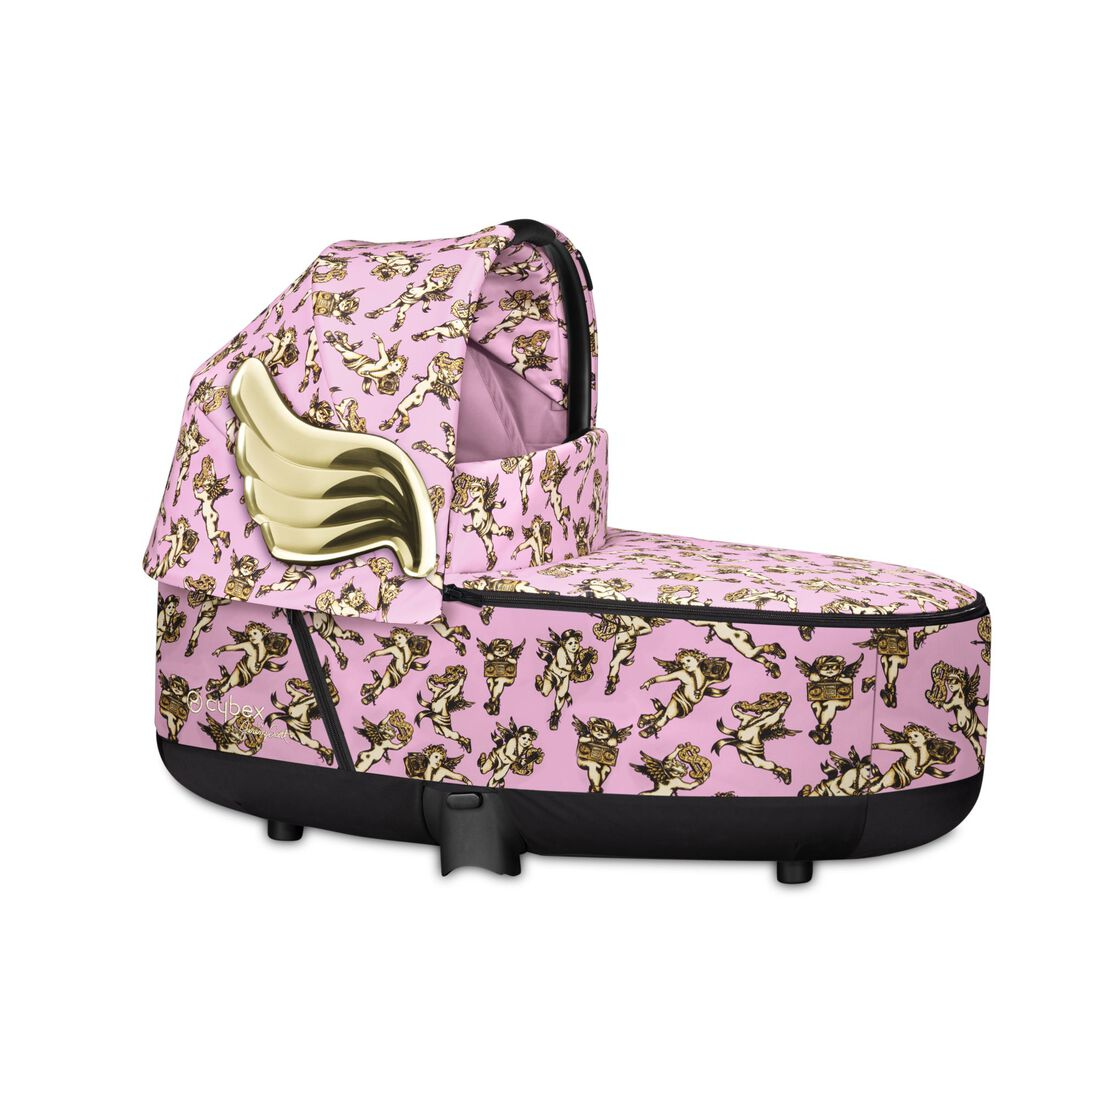 CYBEX Priam Lux Carry Cot - Cherubs Pink in Cherubs Pink large Bild 1